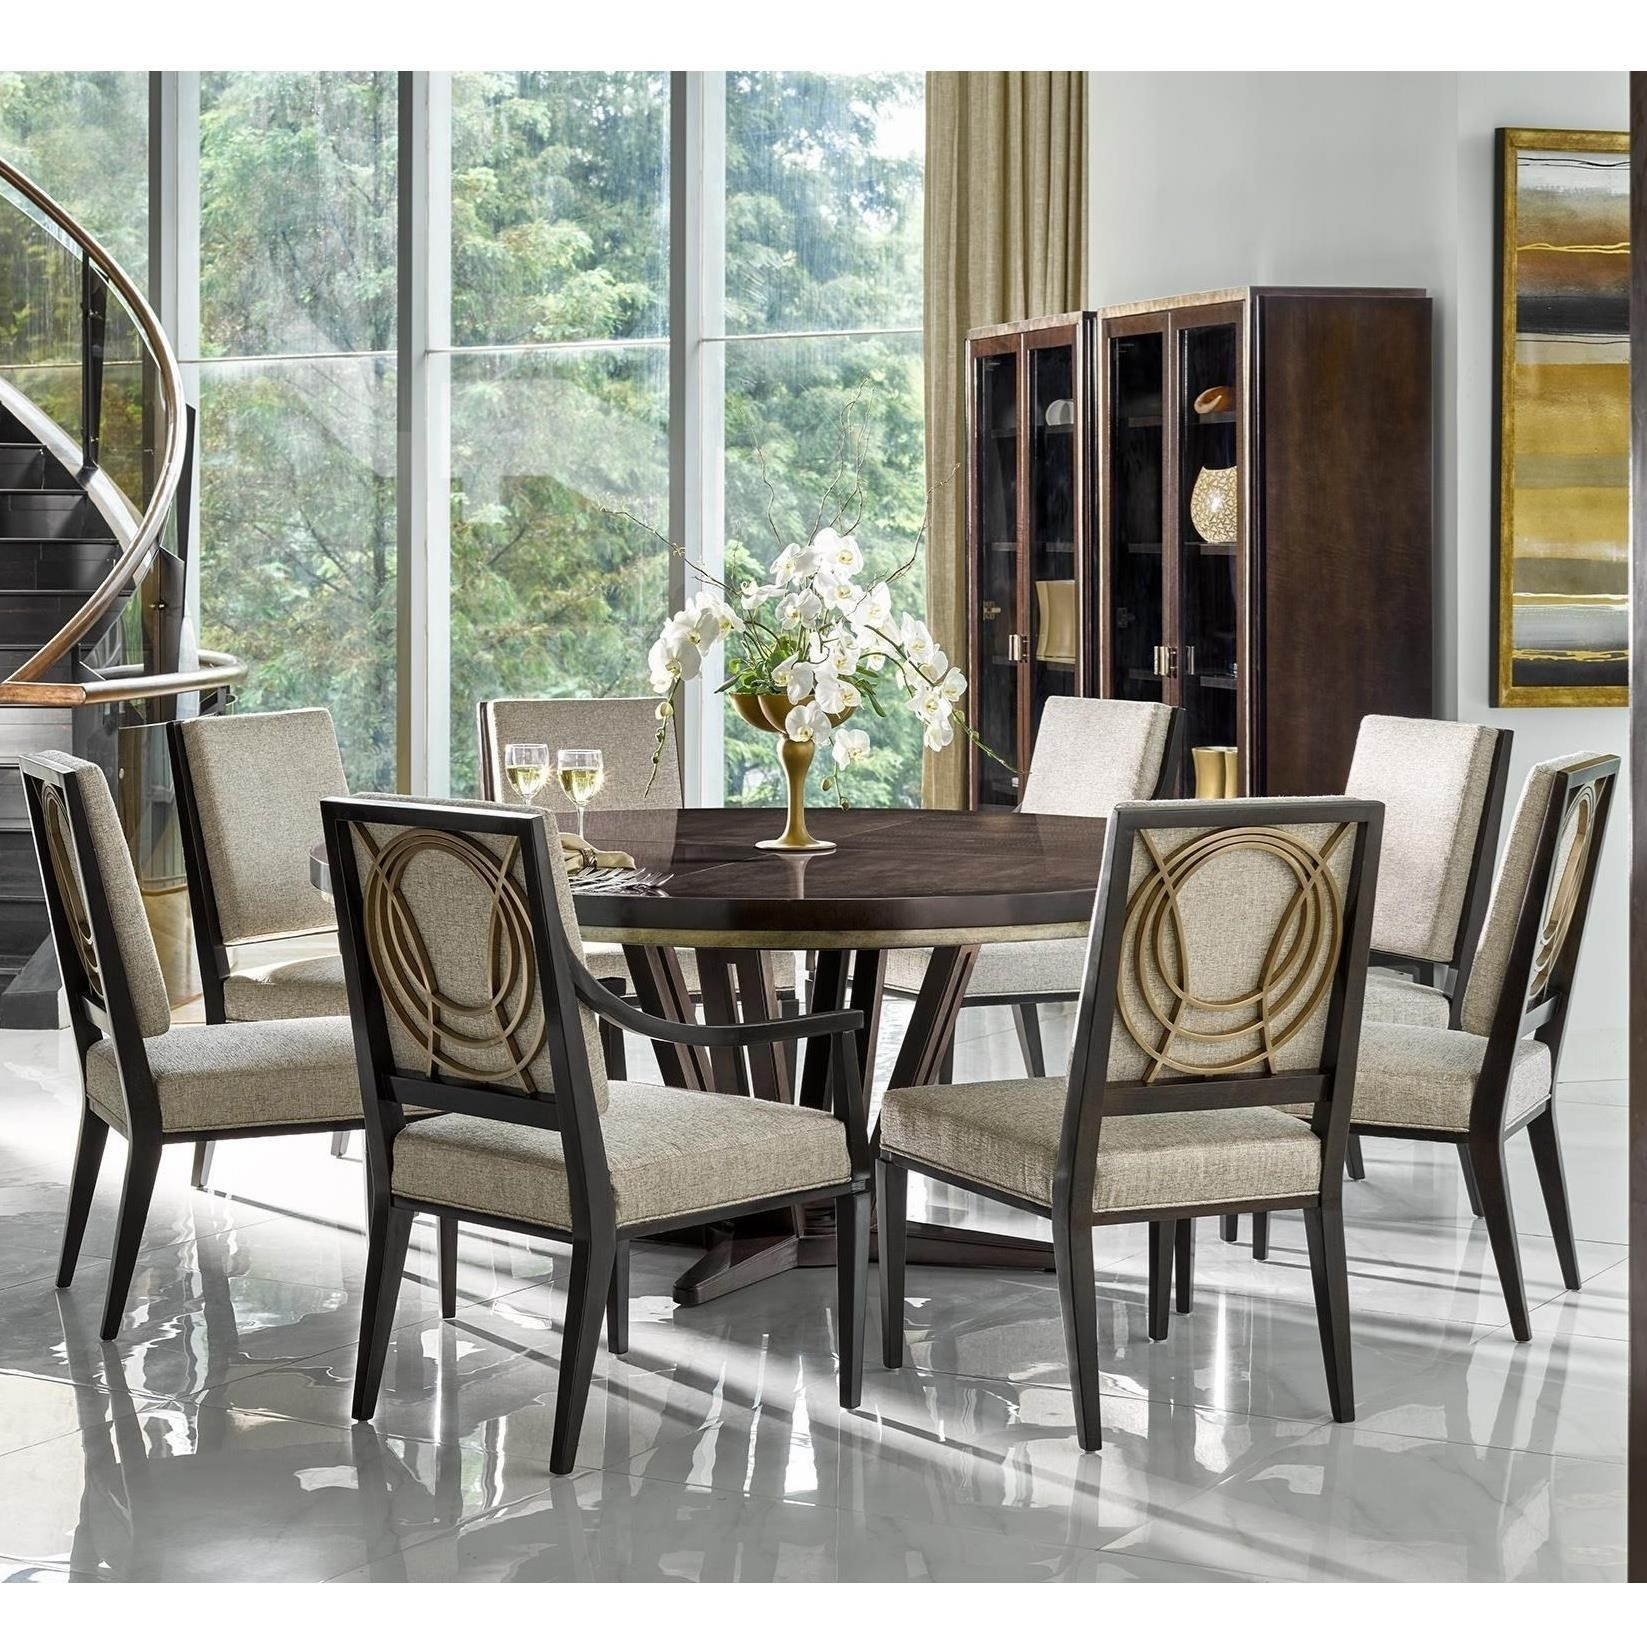 Cheery Caira Piece Extension Set Back Chairs Caira Piece Extension Pertaining To Most Recently Released Walden 9 Piece Extension Dining Sets (Image 1 of 20)